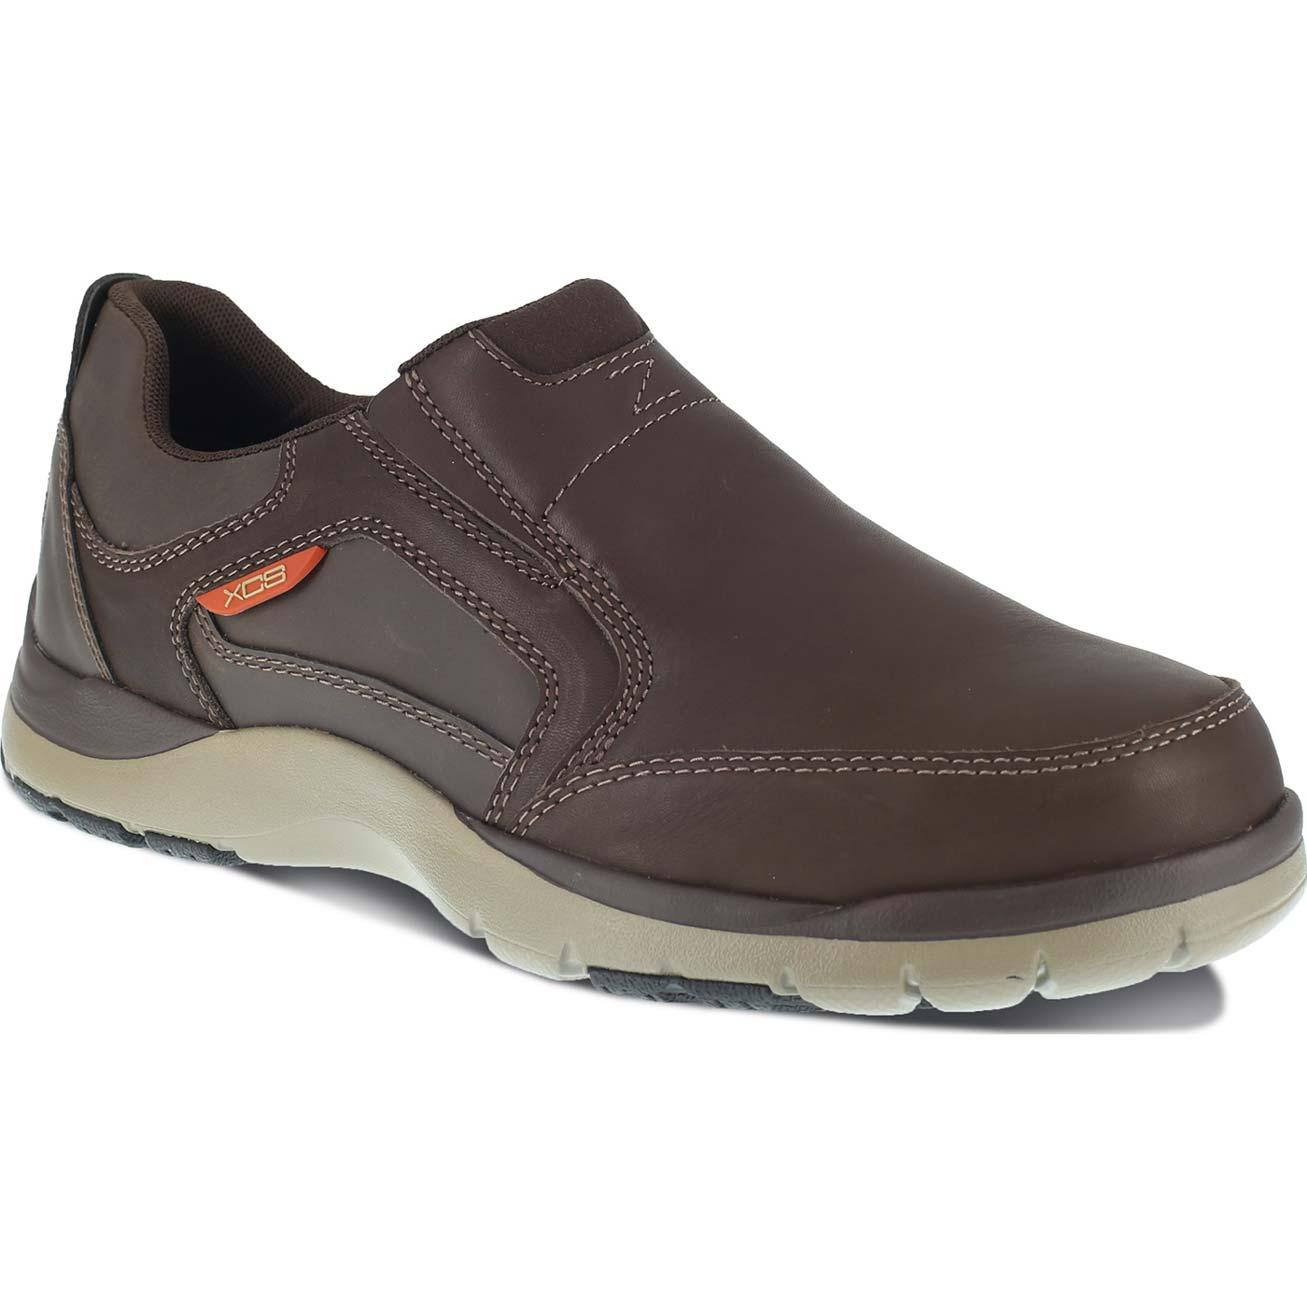 Rockport Works Kingstin Work Steel Toe Static Dissipative